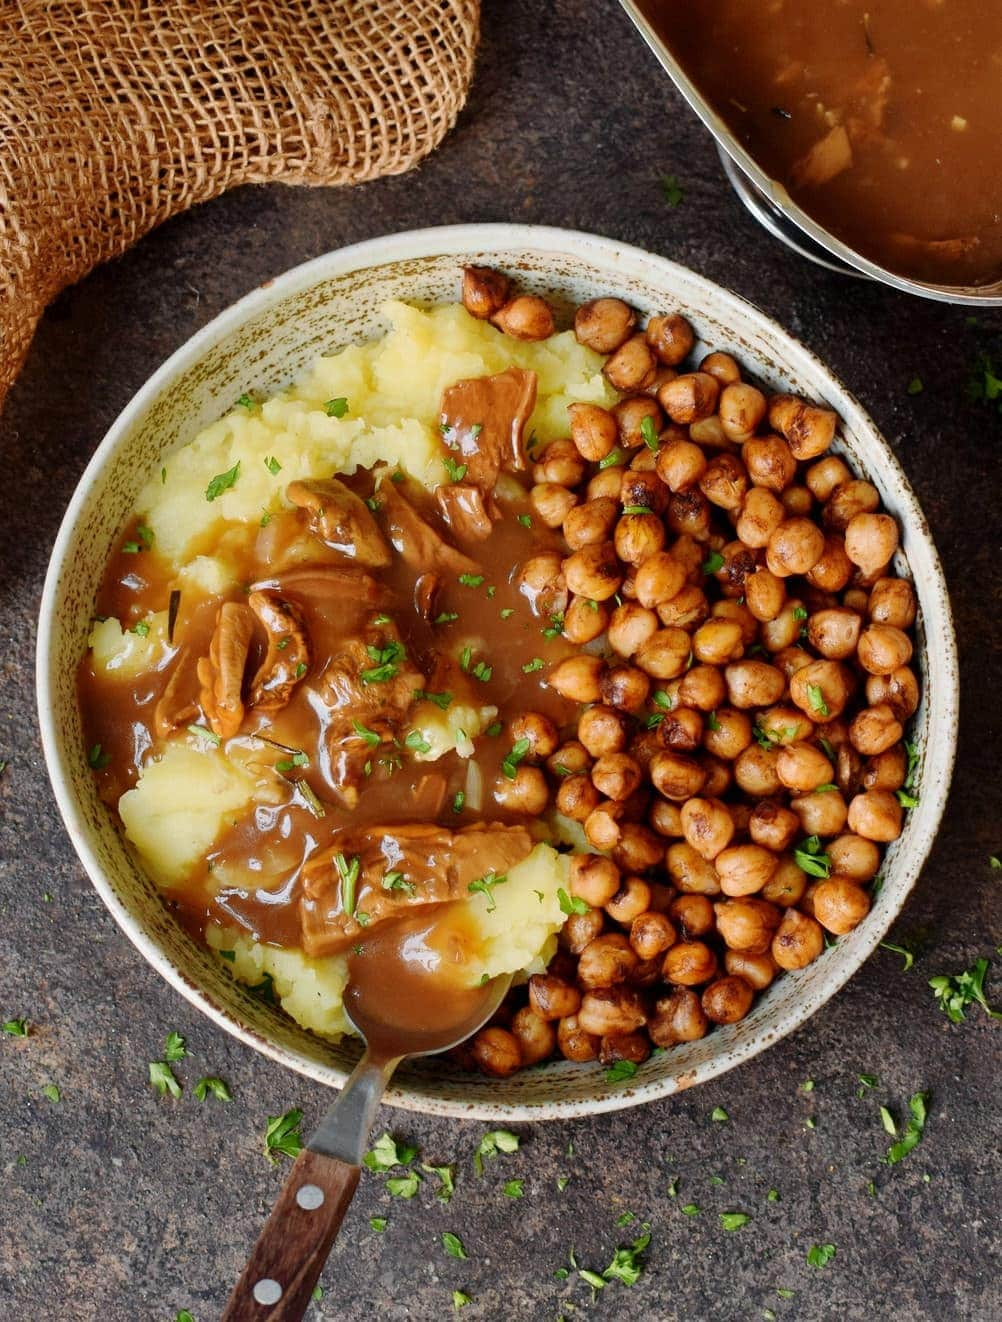 gravy with mashed potatoes and chickpeas in bowl